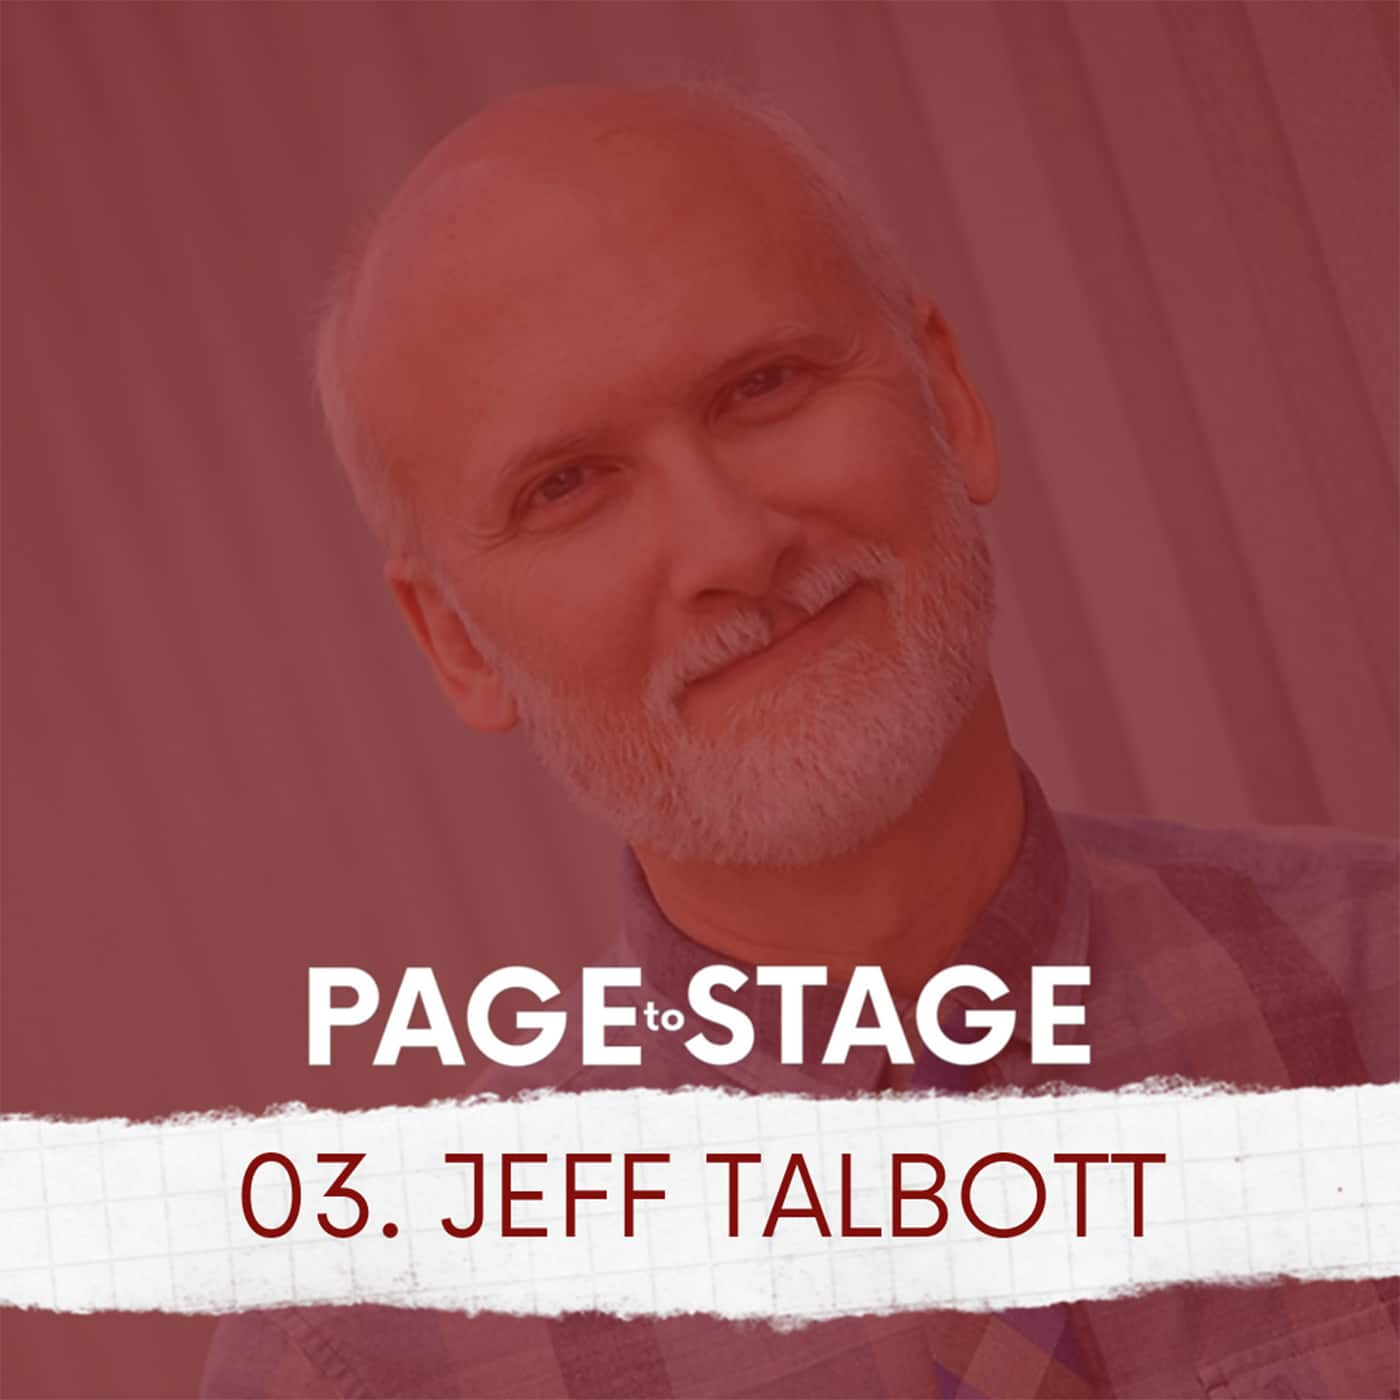 Page to Stage Ep 3 Jeff Talbott